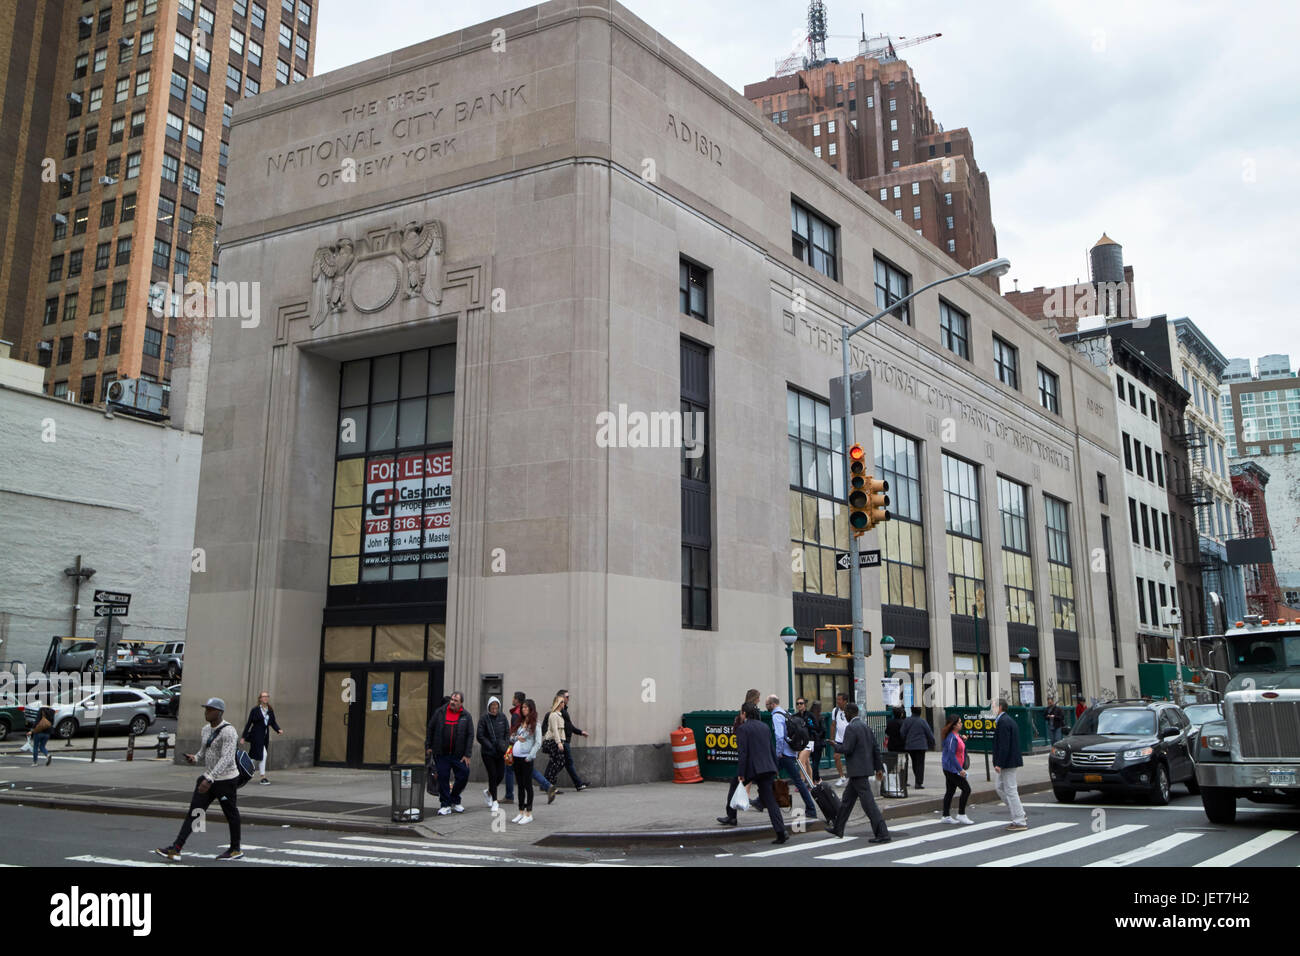 415 broadway first national city bank of New York City USA - Stock Image